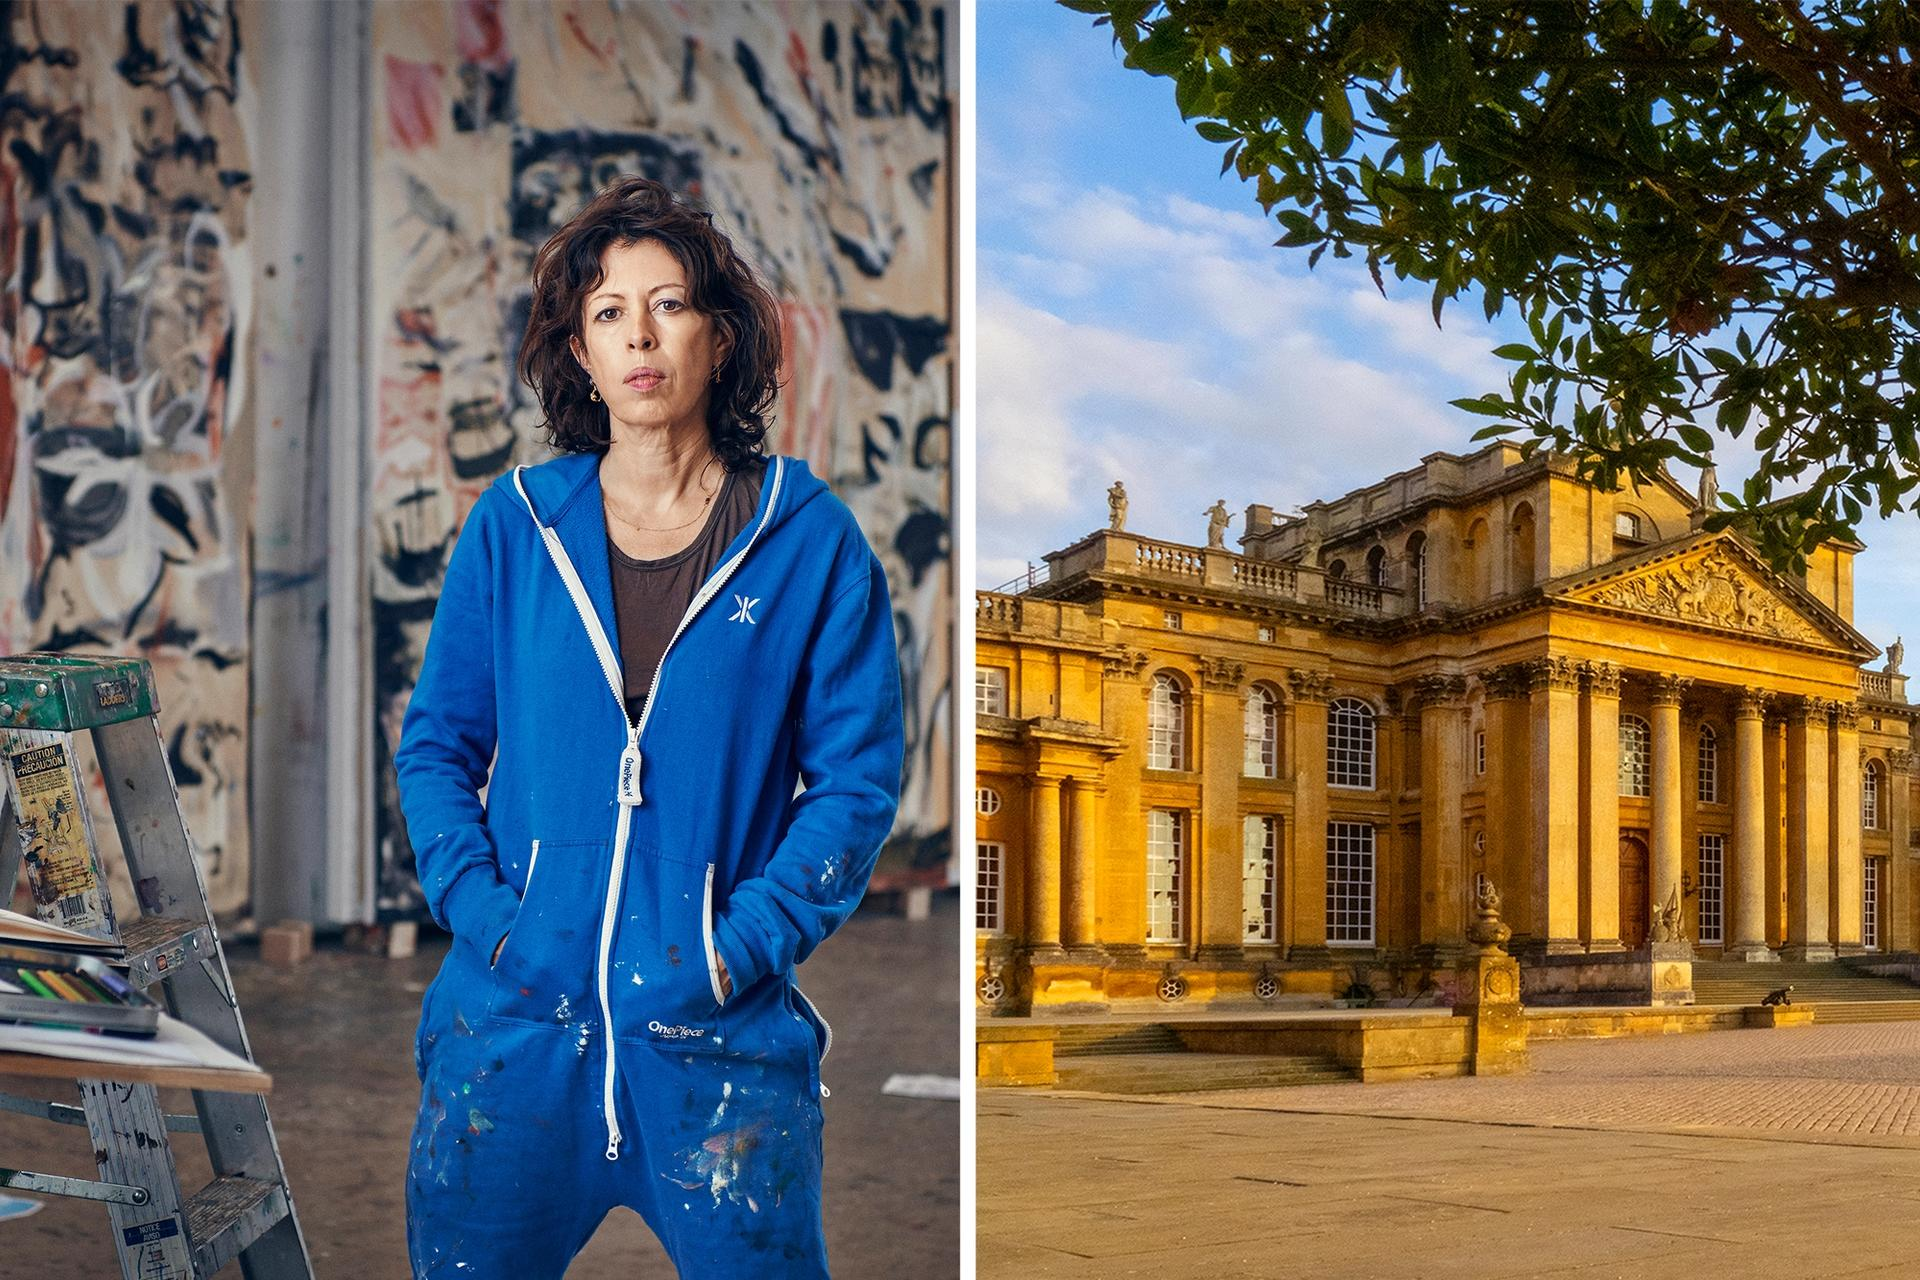 Cecily Brown (left) is the latest artist to be chosen for an exhibition at Blenheim Palace (right) Brown: Photo by Tom Lindboe, 2019. Both images courtesy of Blenheim Art Foundation